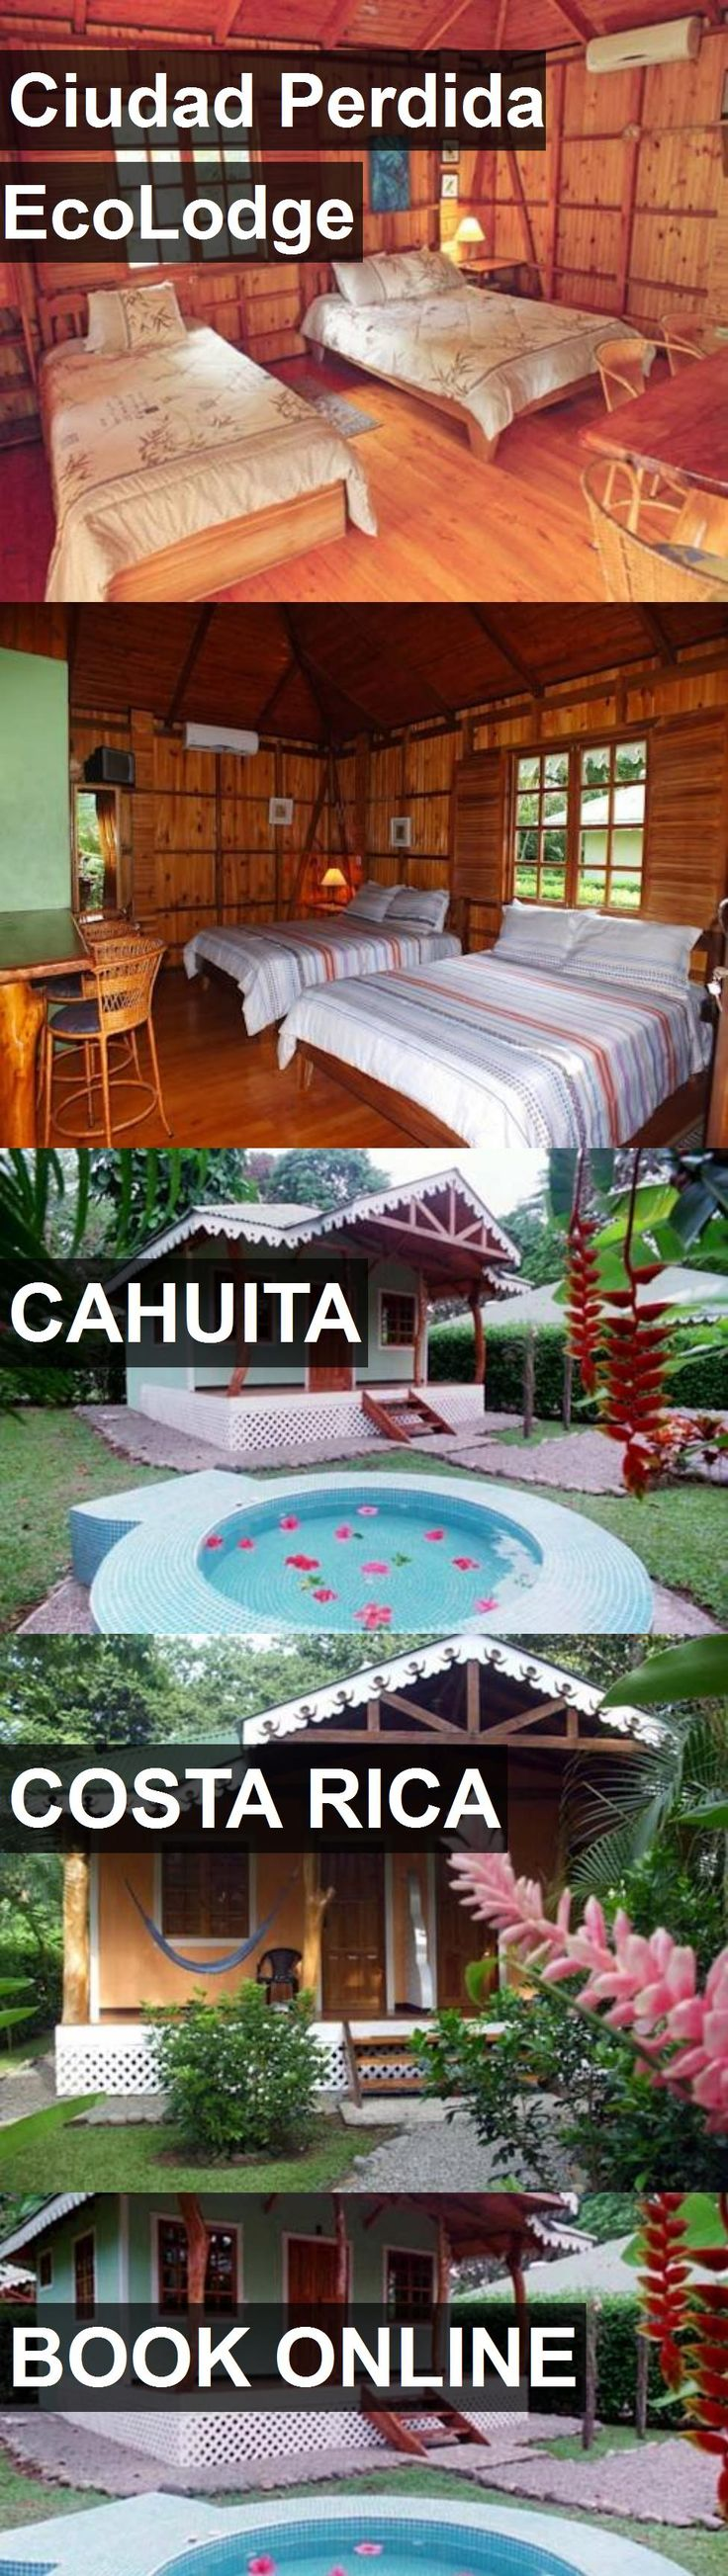 Hotel Ciudad Perdida EcoLodge in Cahuita, Costa Rica. For more information, photos, reviews and best prices please follow the link. #CostaRica #Cahuita #travel #vacation #hotel